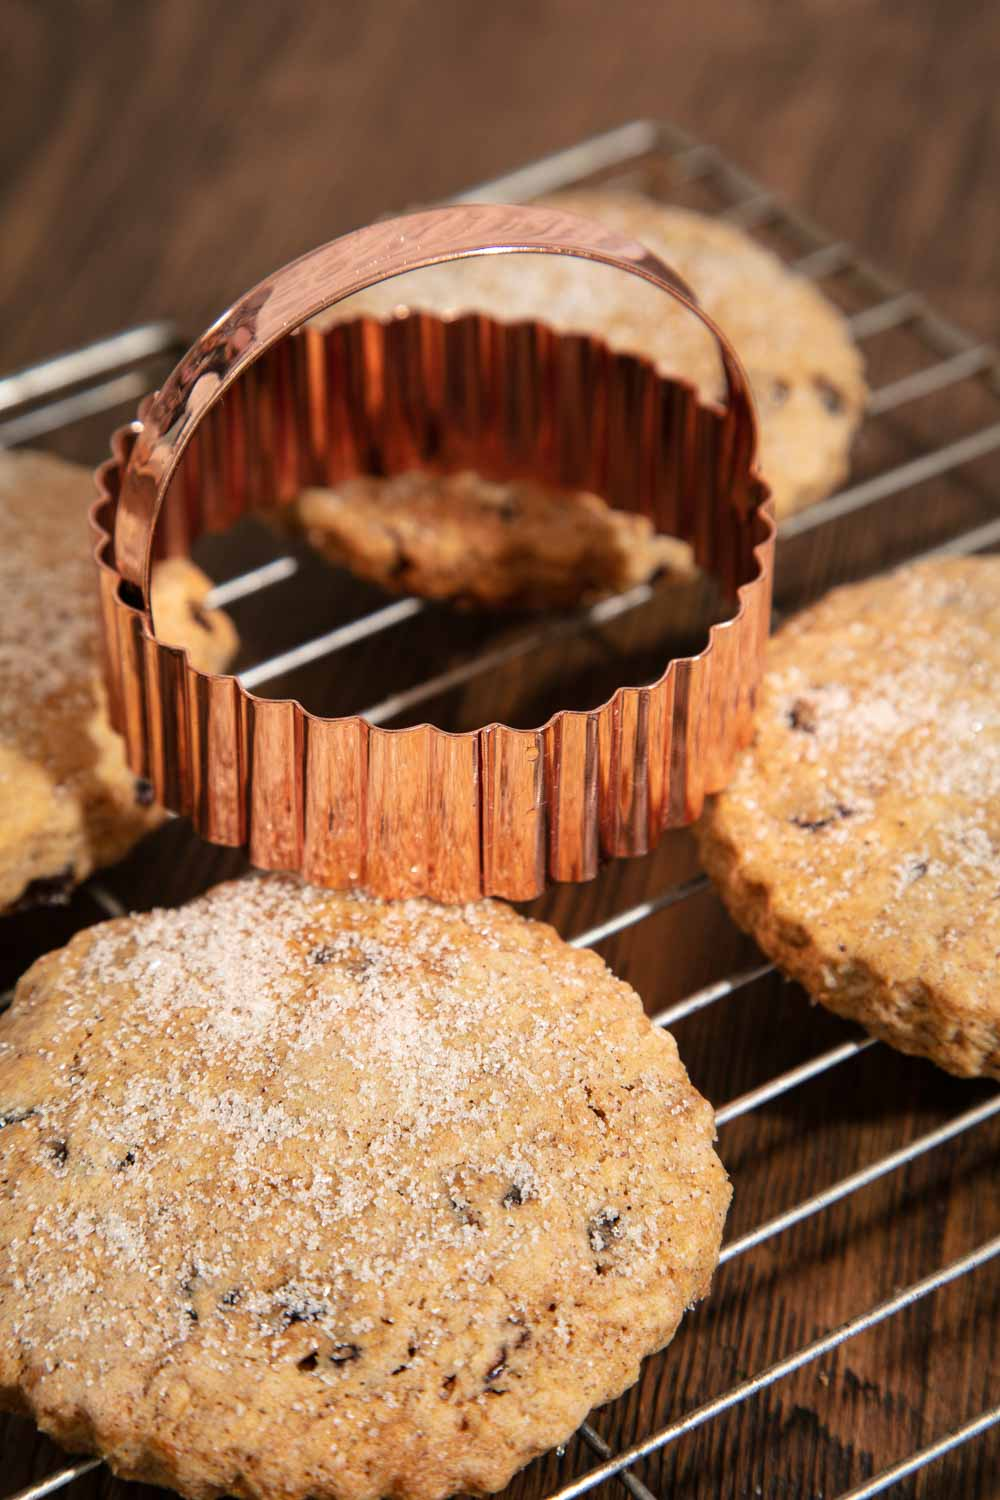 Easter Biscuits cooling on a wire rack, topped with a copper biscuit cutter.